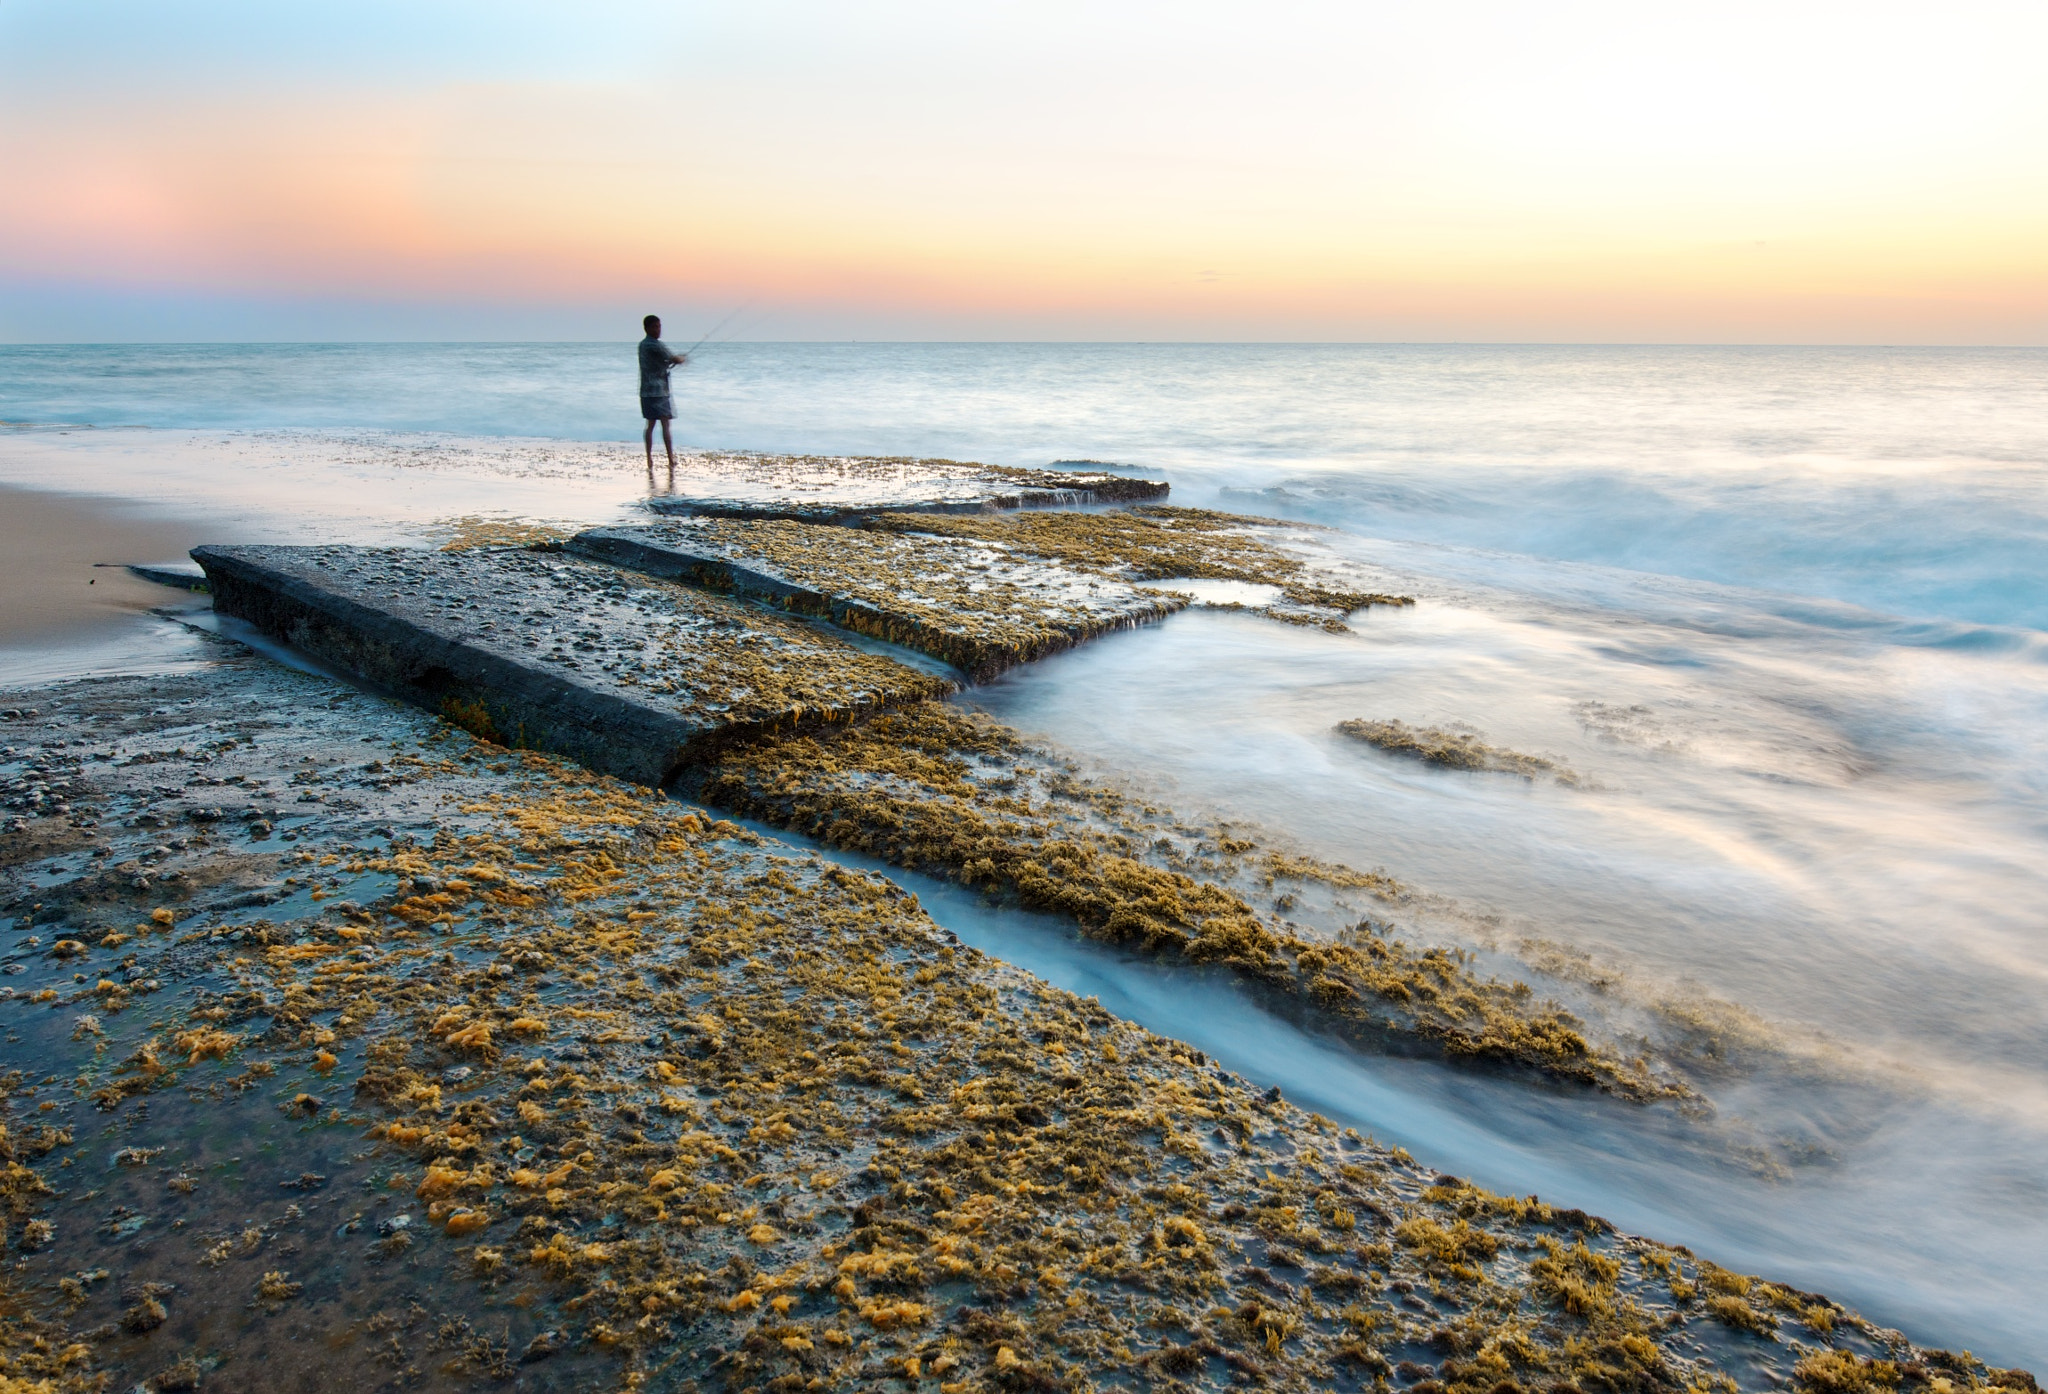 Photograph PointY ReeF by ViShWa  on 500px